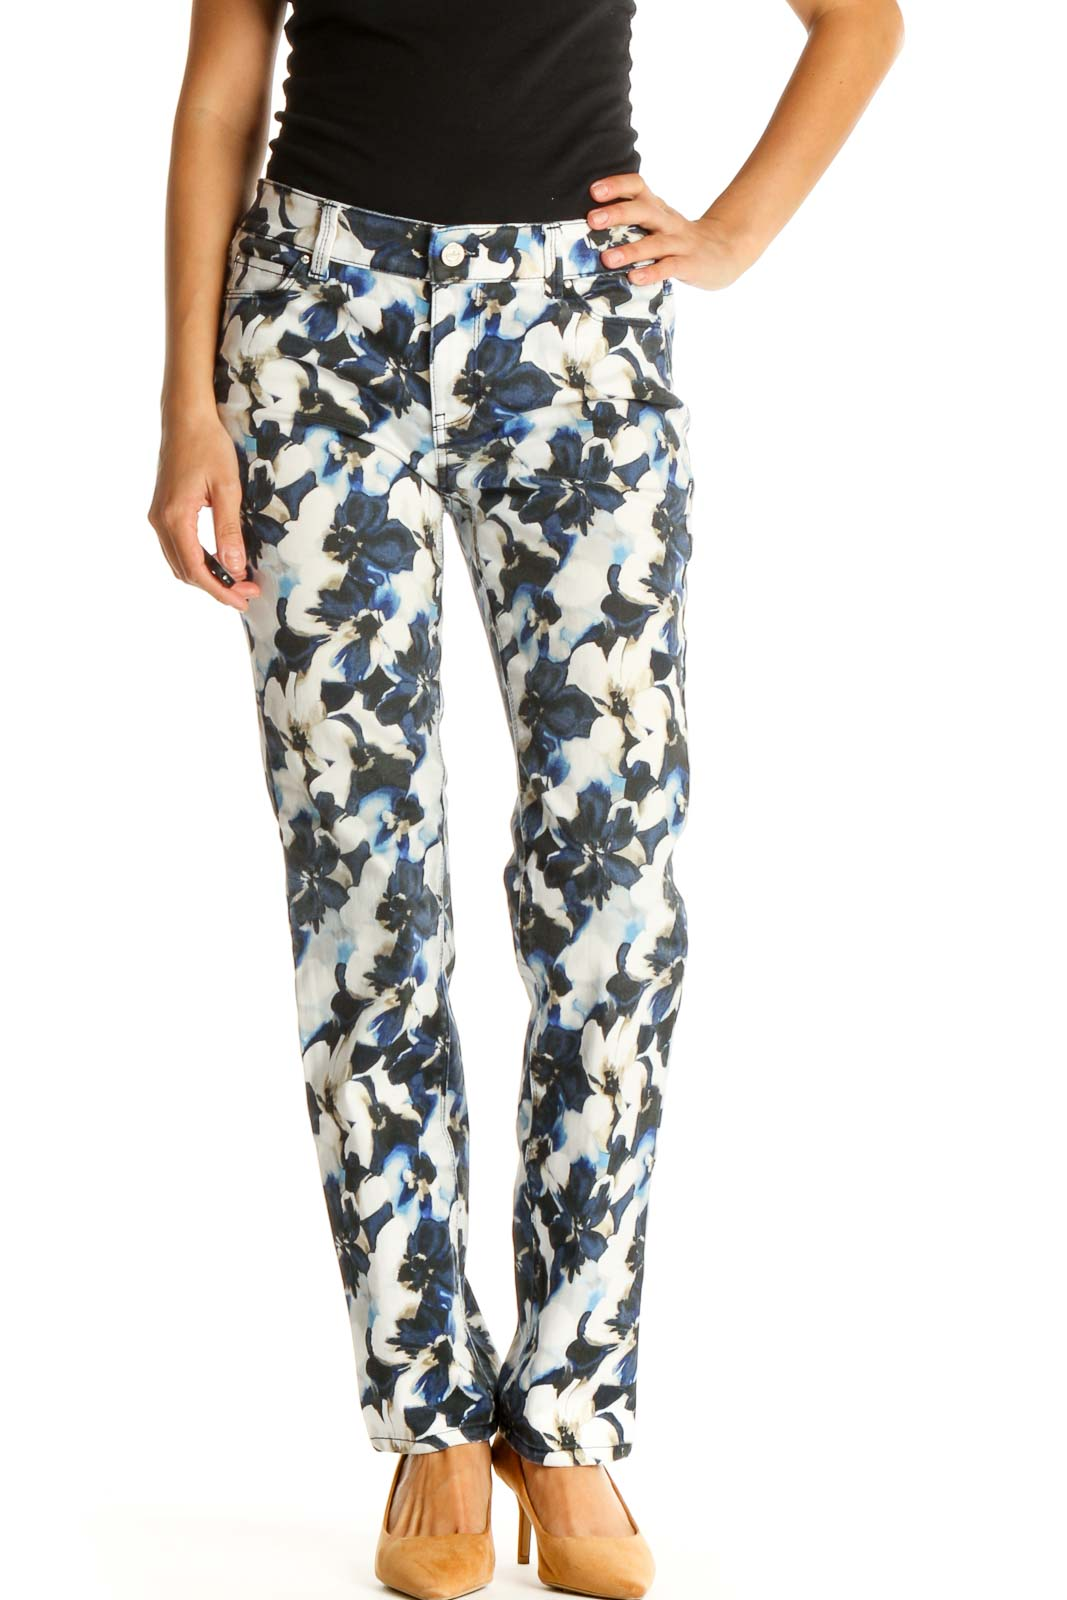 Gray Floral Print All Day Wear Pants Front